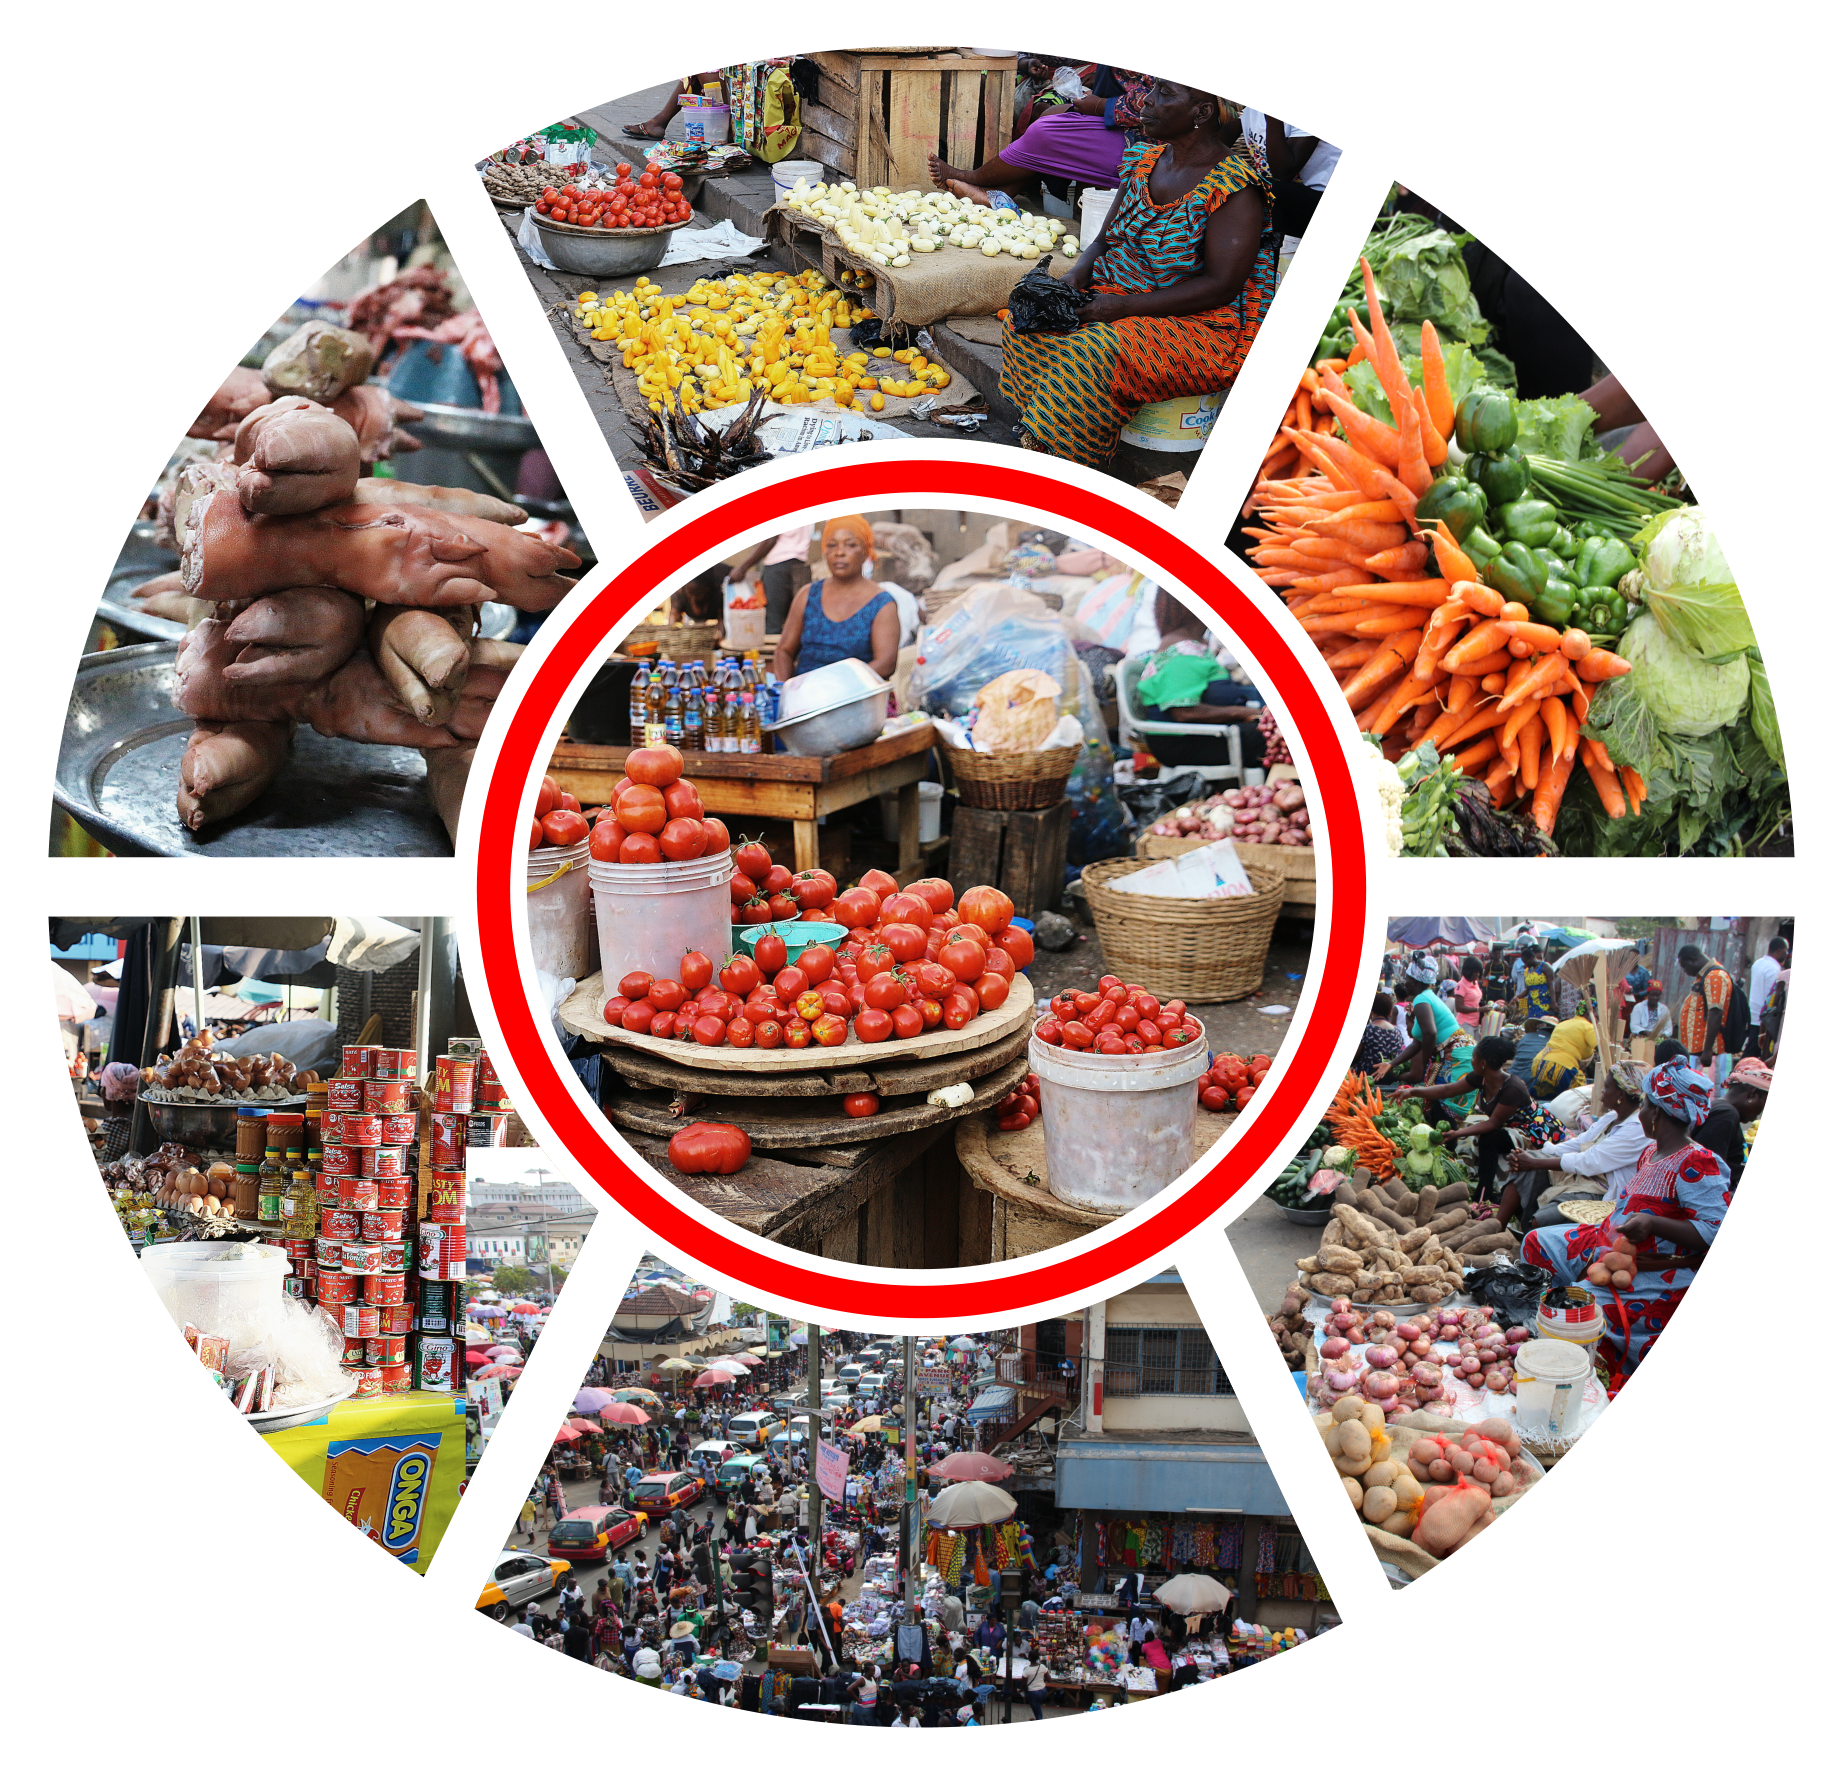 investment opportunities in Ghana - 35 products to trade